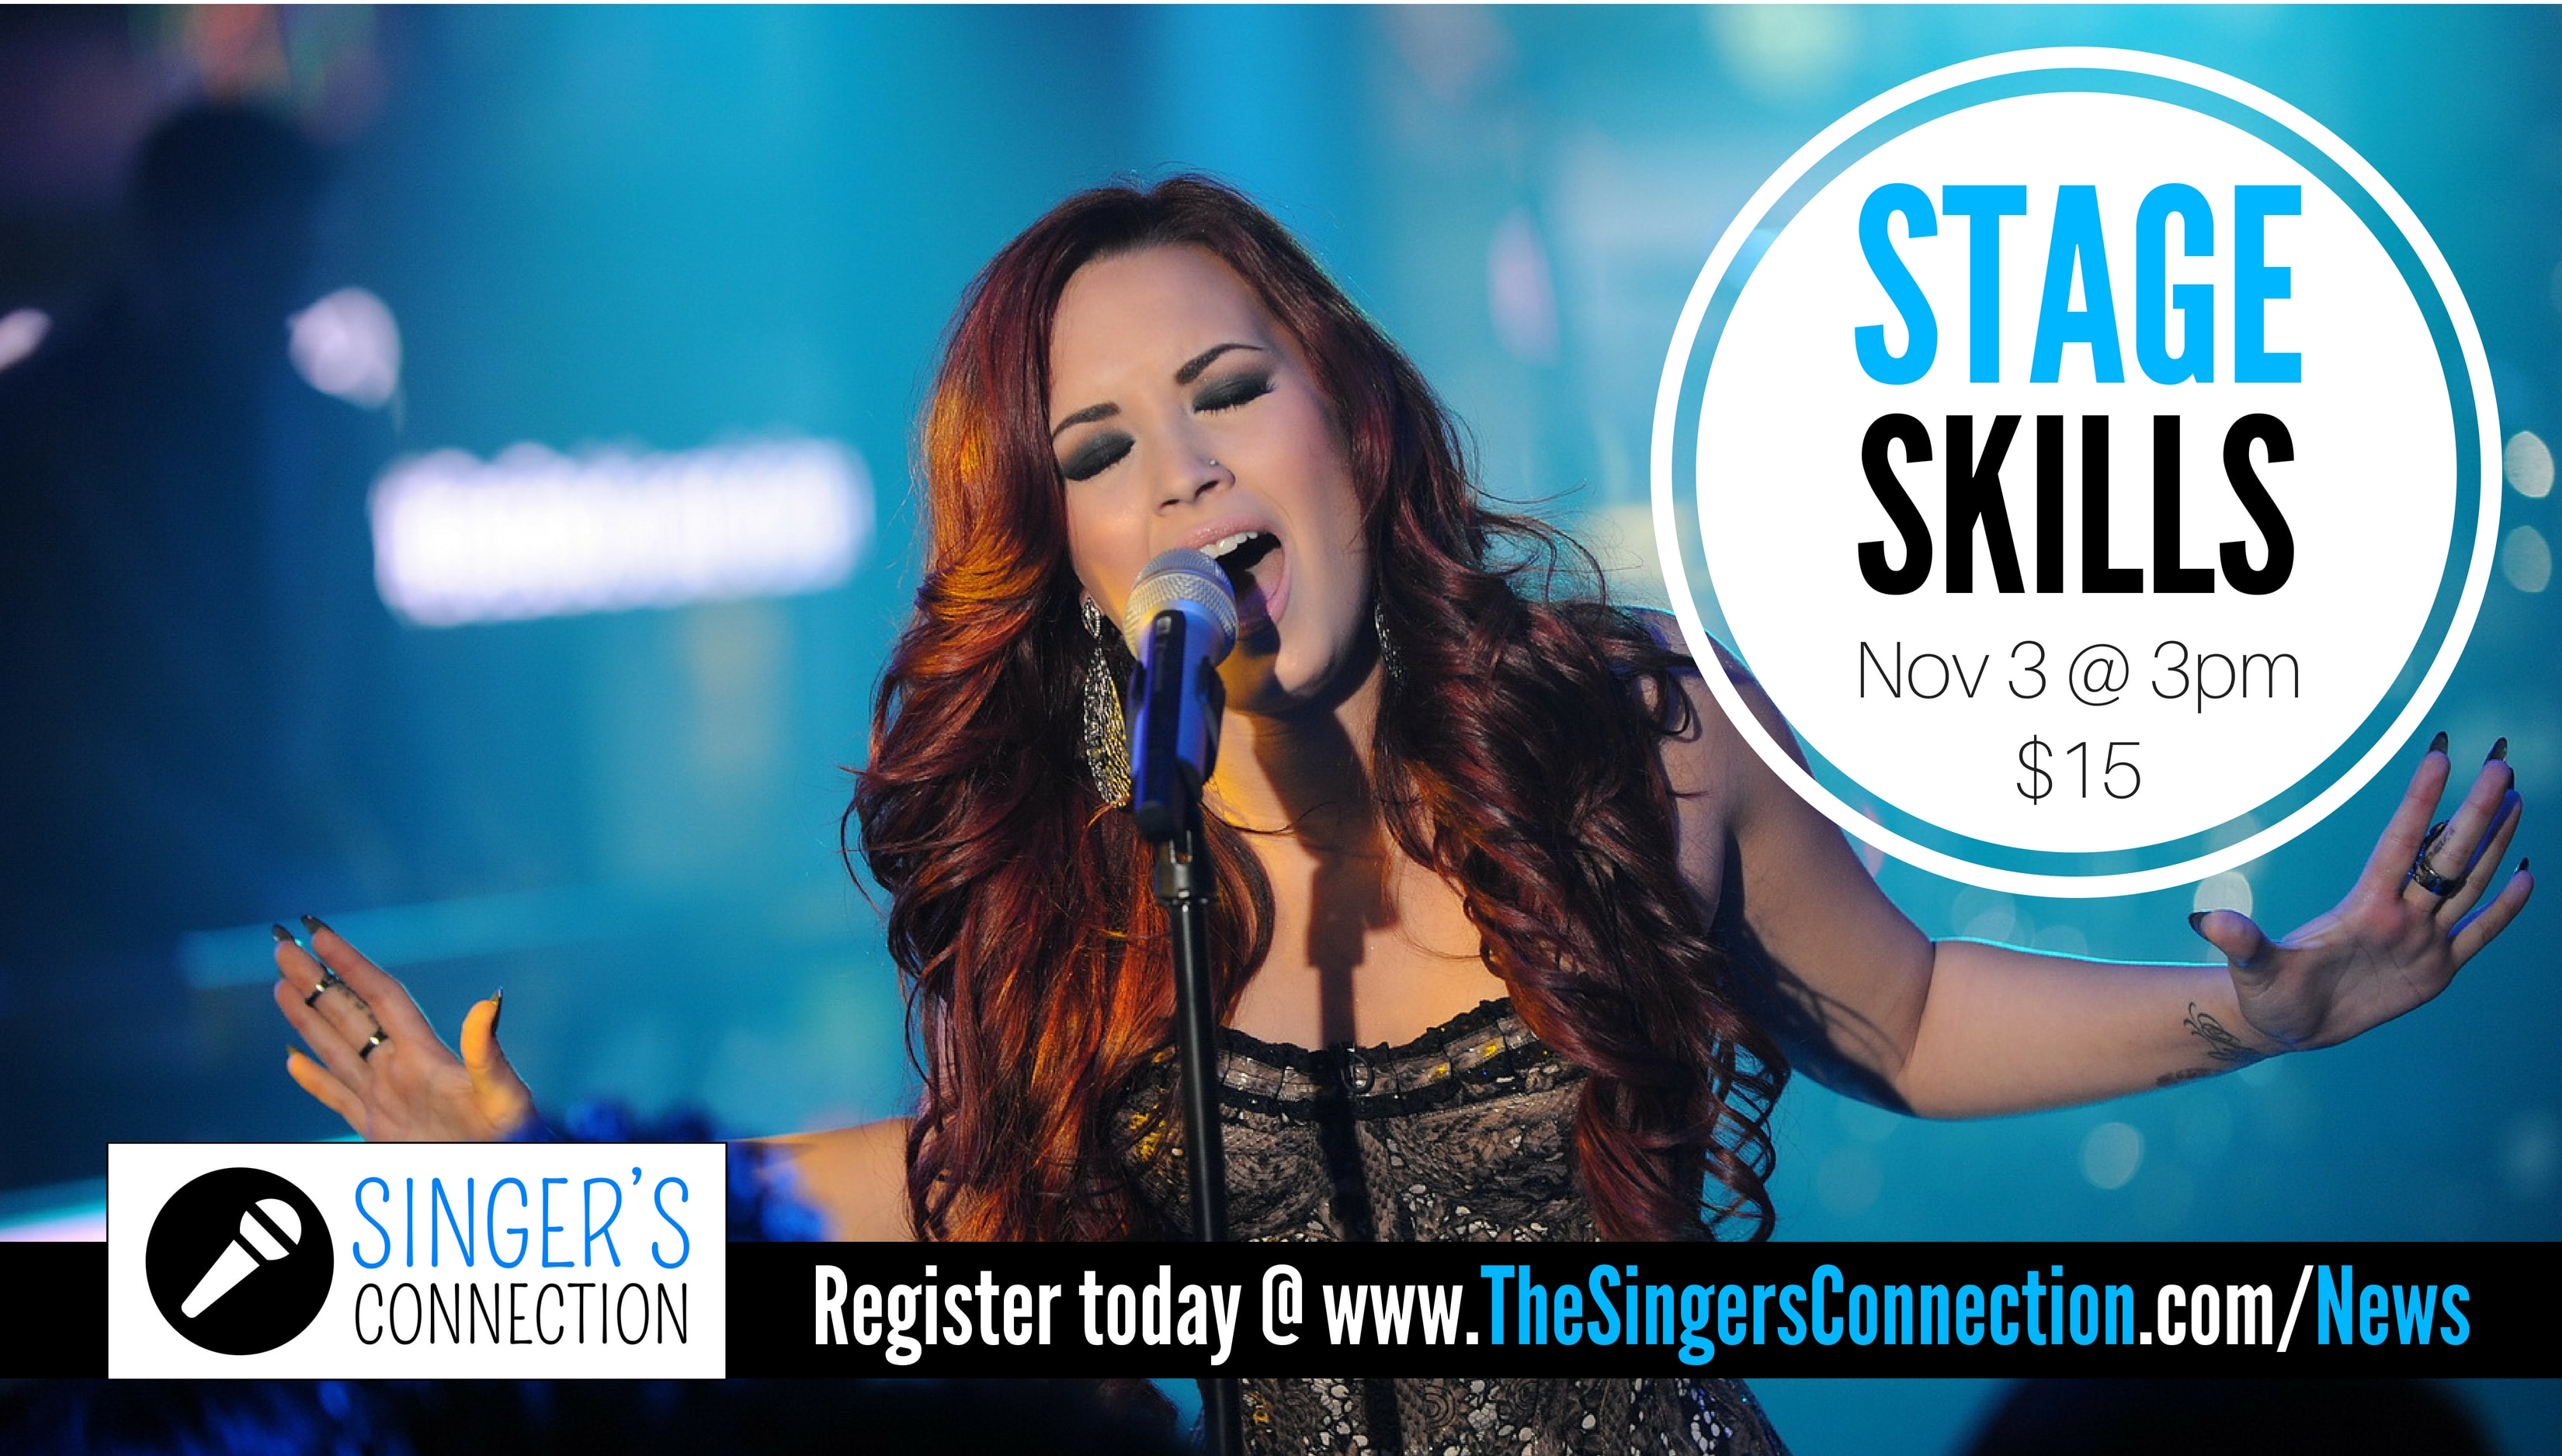 Stage Skills!  Learn the most powerful techniques to take your performance to the next level!